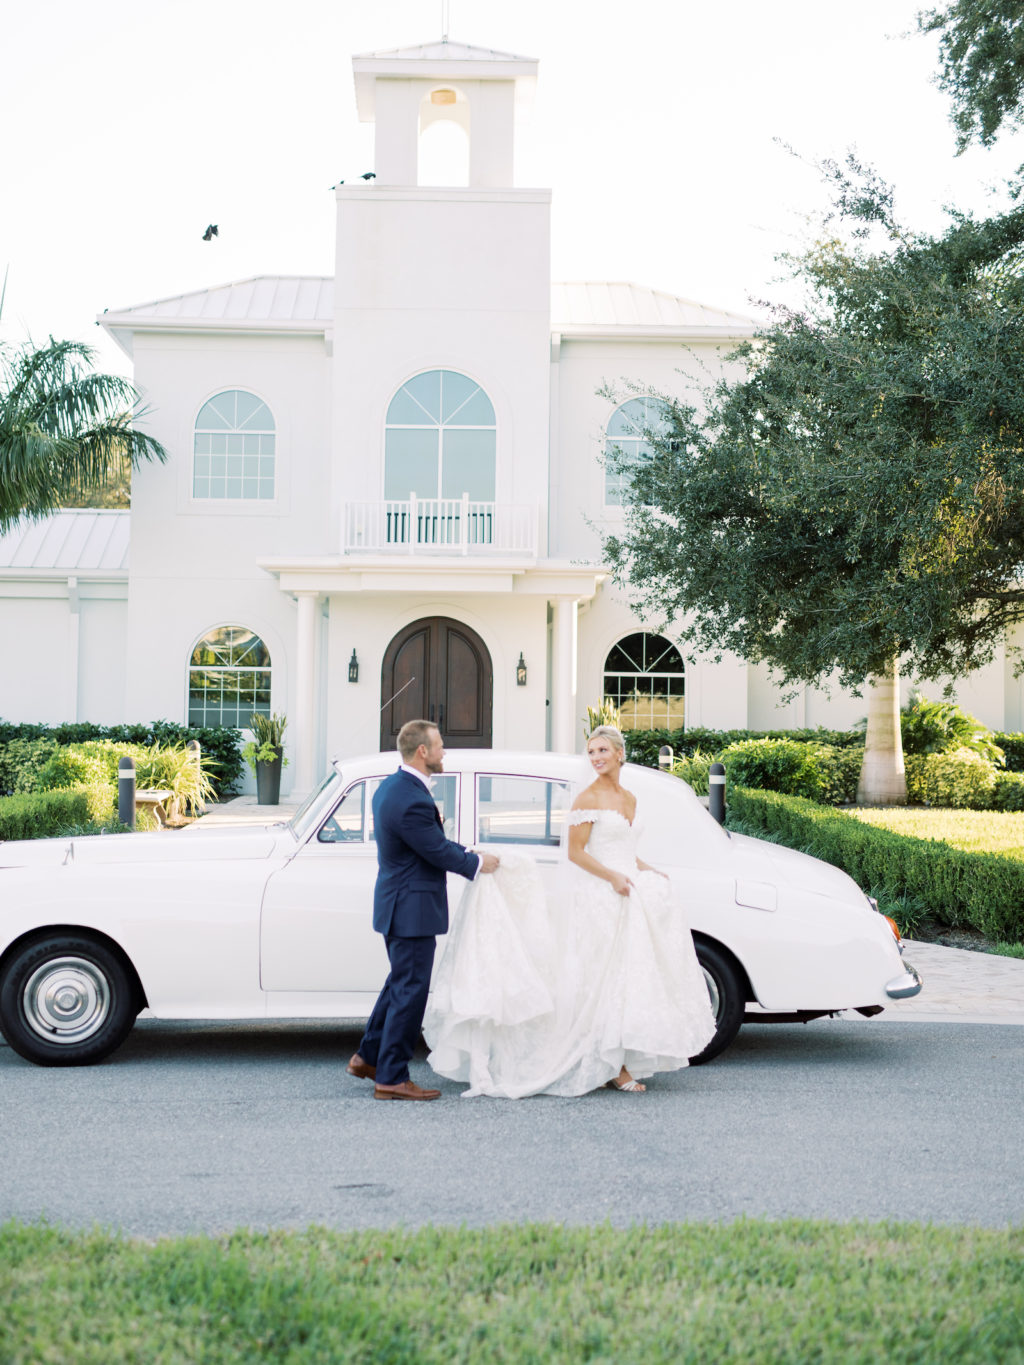 Timeless Florida Groom Holding Train of Bride's Dress in Front of White Vintage Car | Safety Harbor Traditional Wedding Ceremony Venue Harborside Chapel